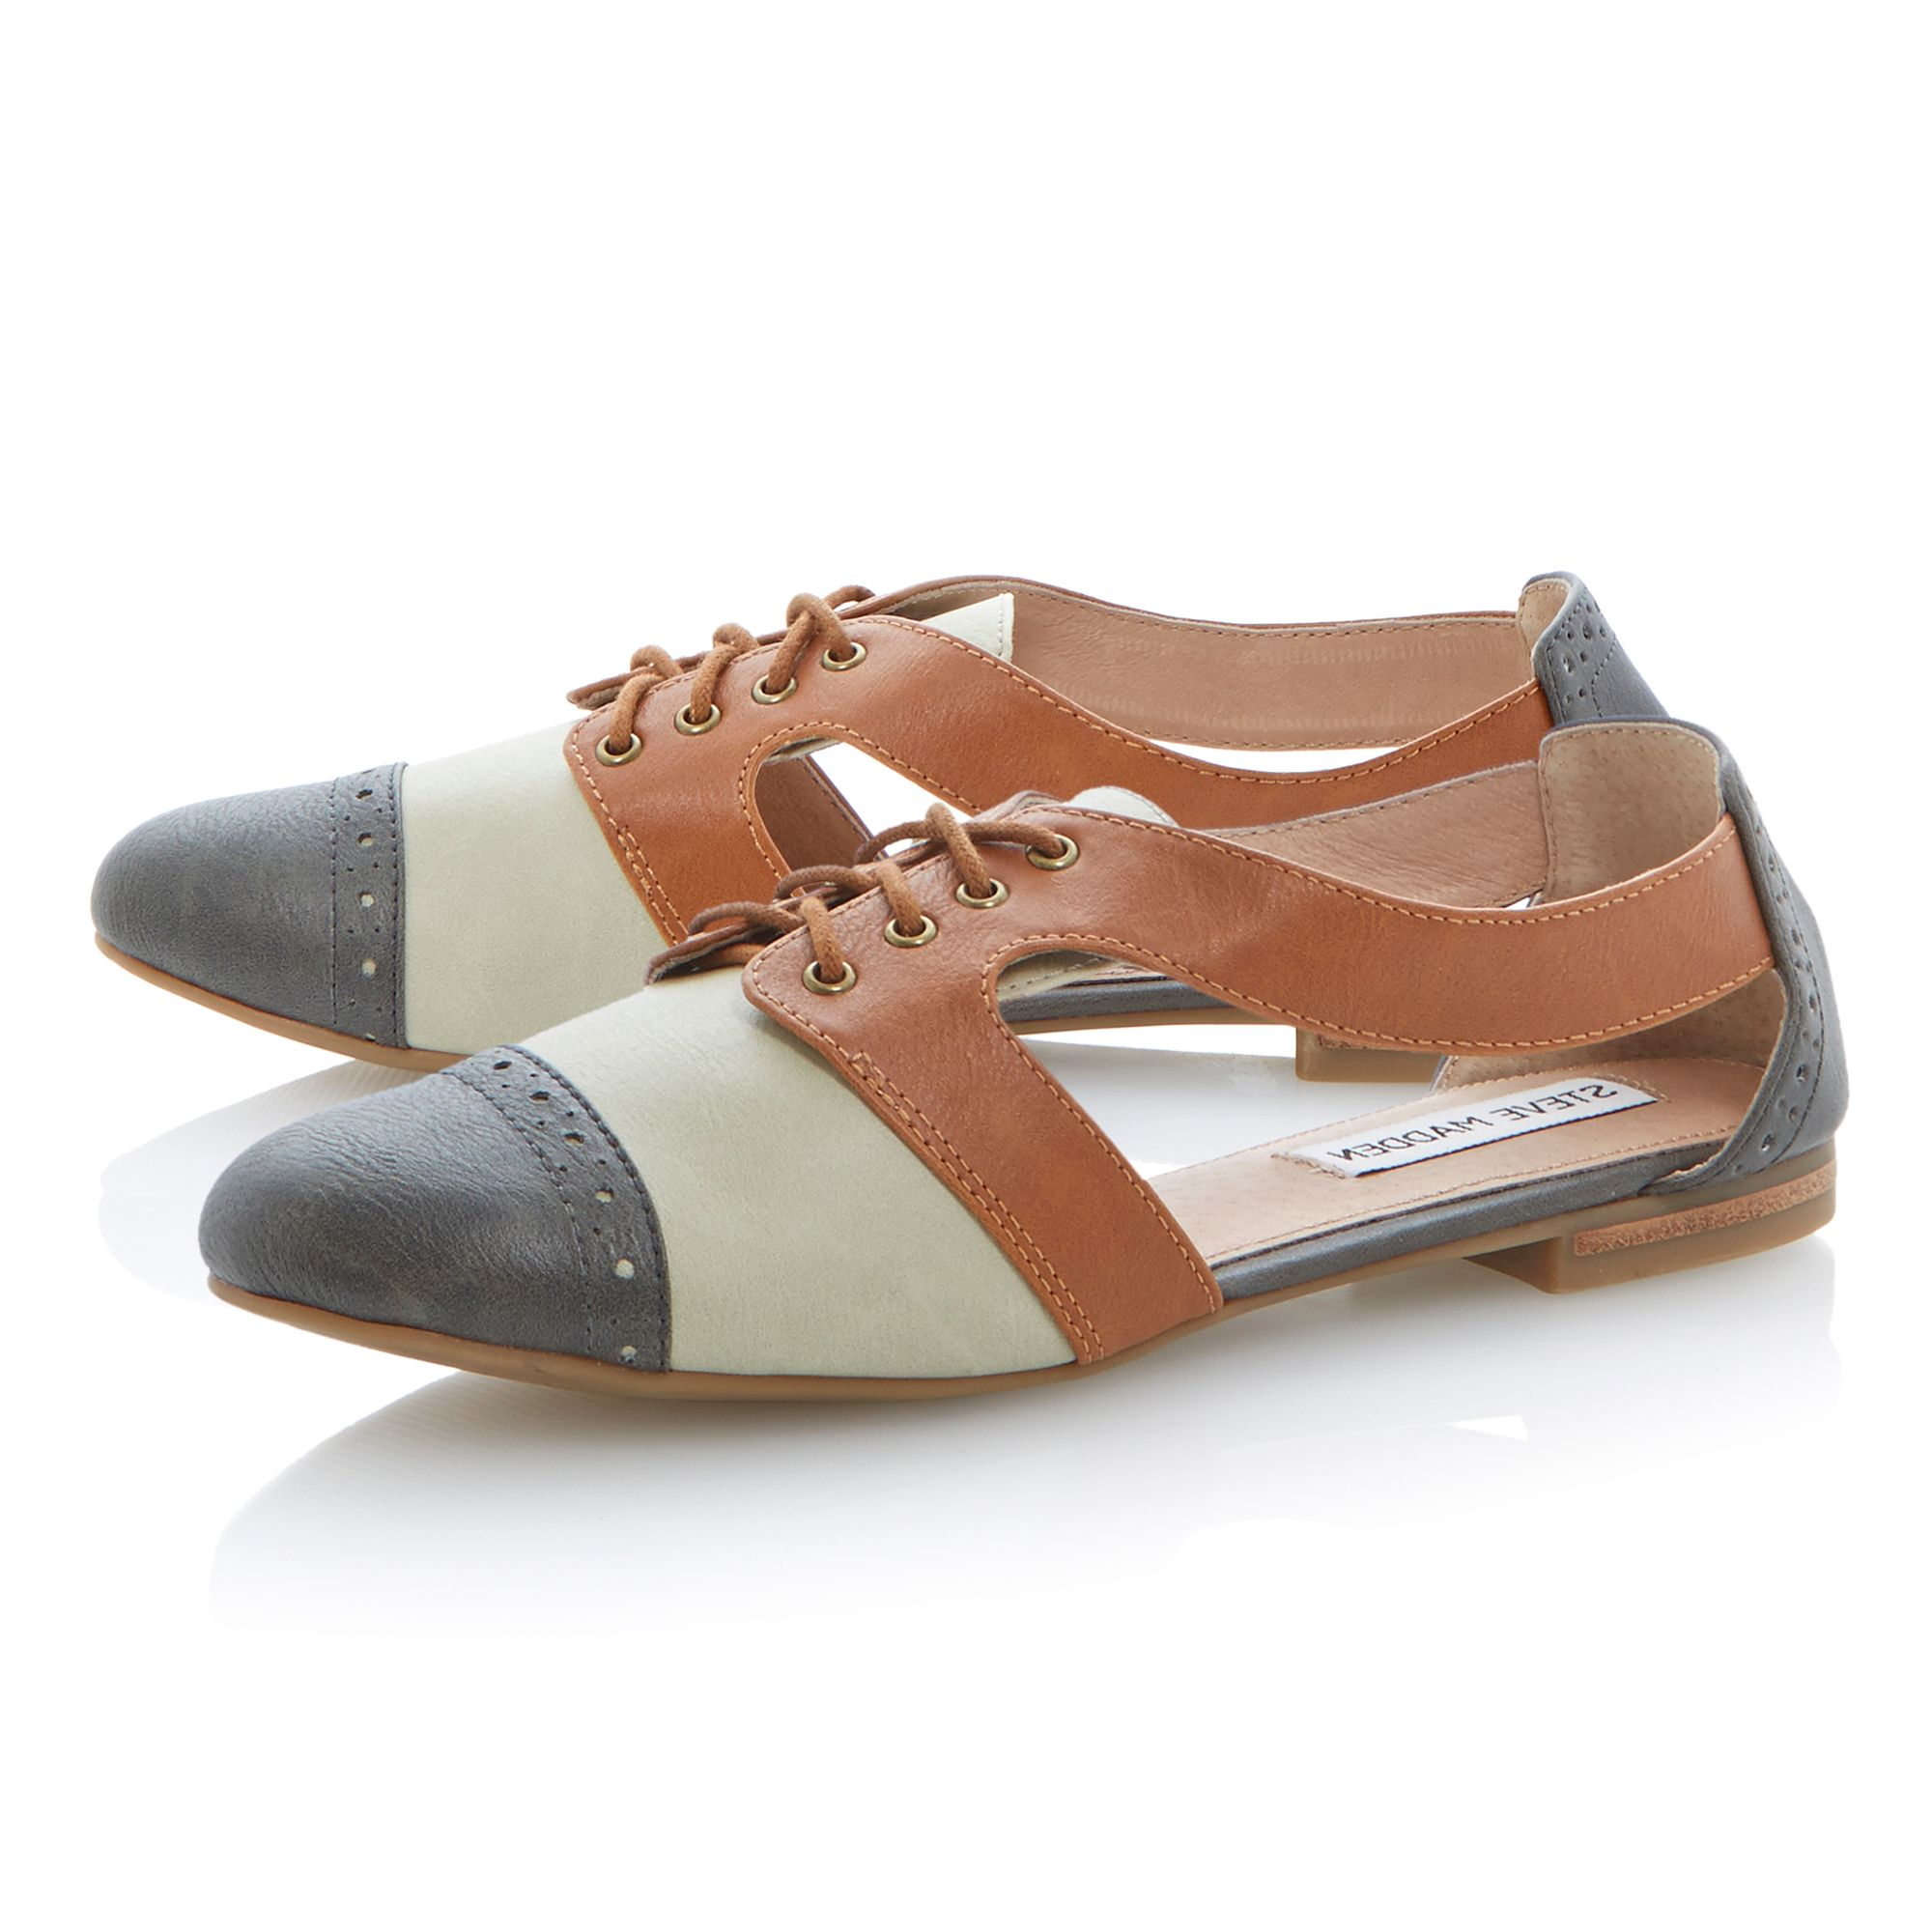 Cori almond toe flat Oxford shoes